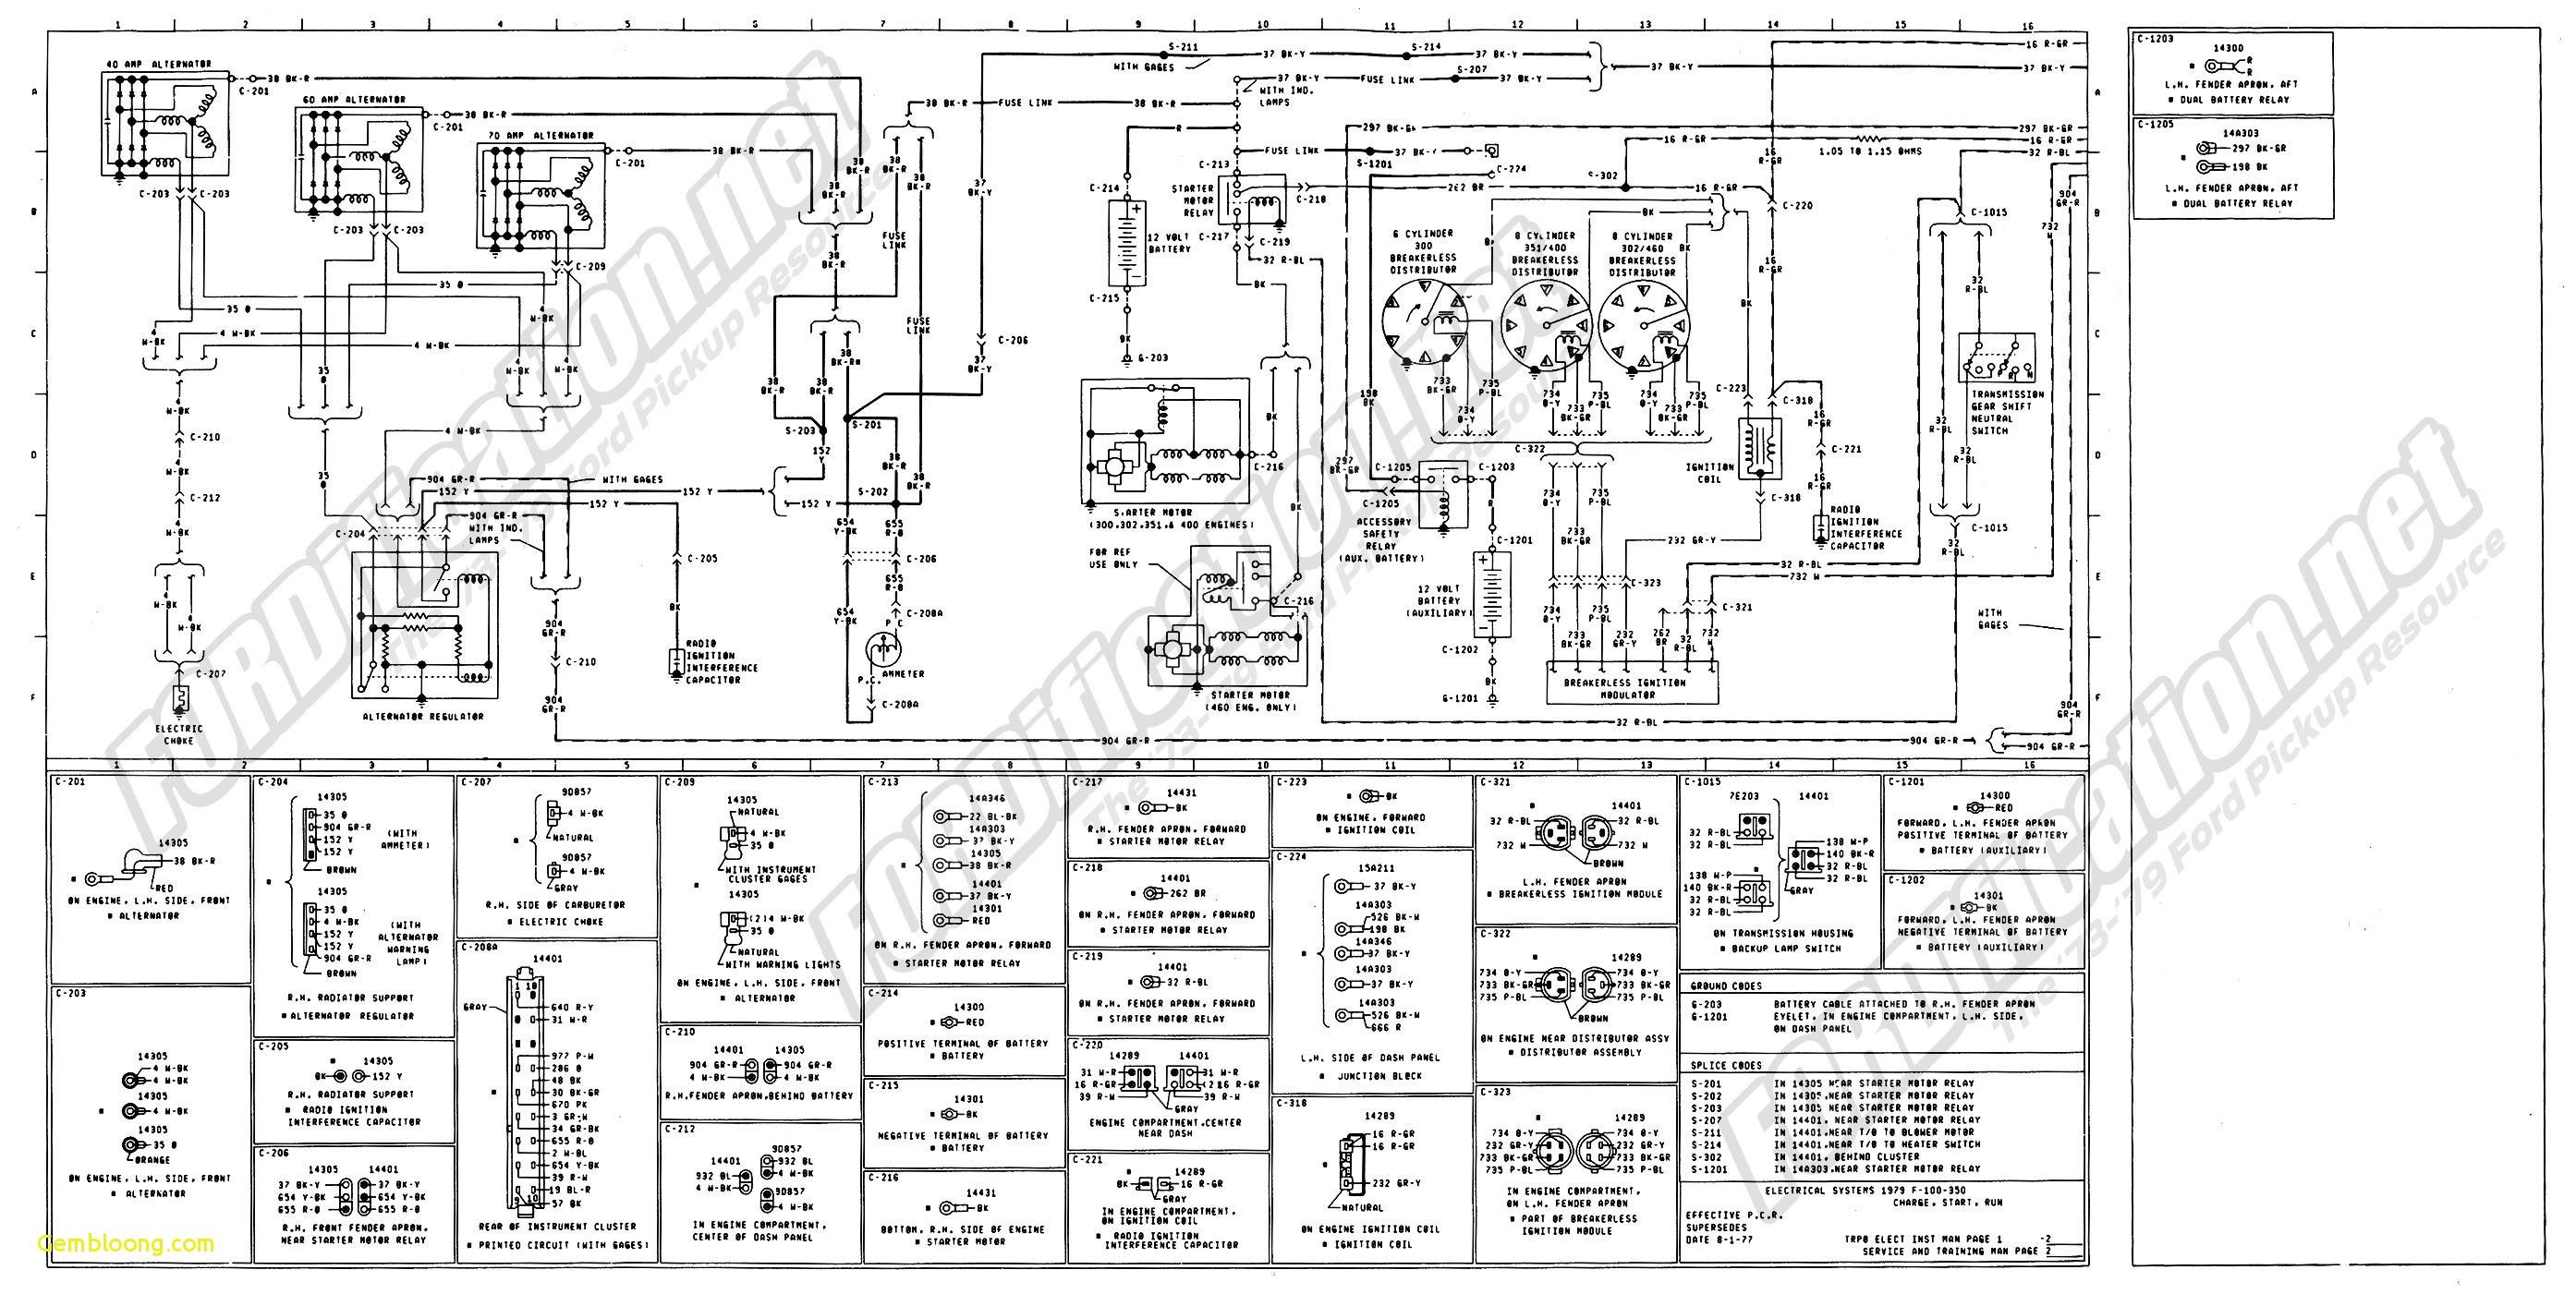 Wiring Diagram For 97 Jeep Grand Cherokee | Wire